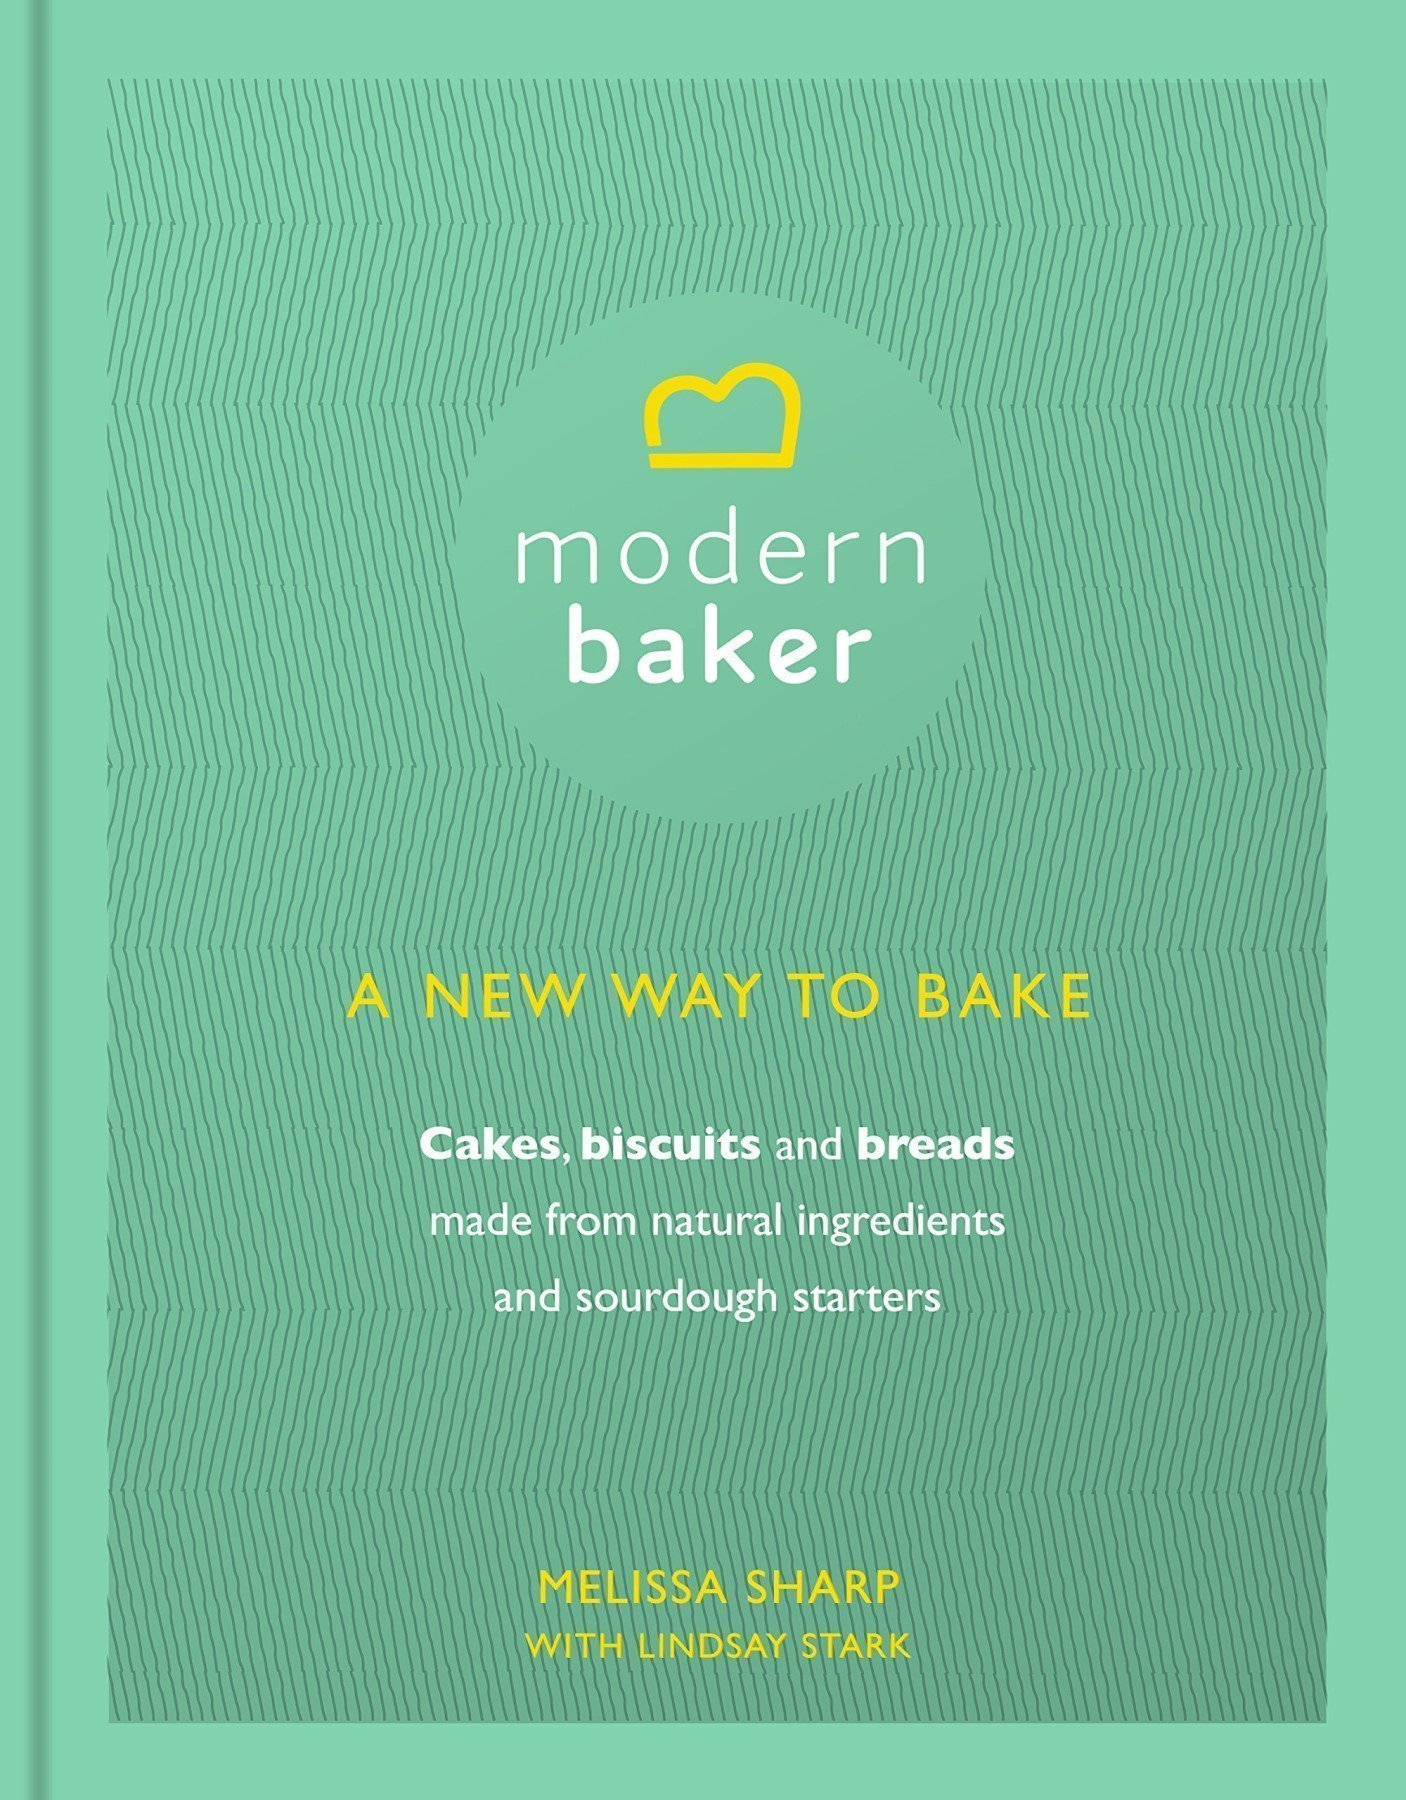 Modern Baker: A New Way To Bake Cookbook